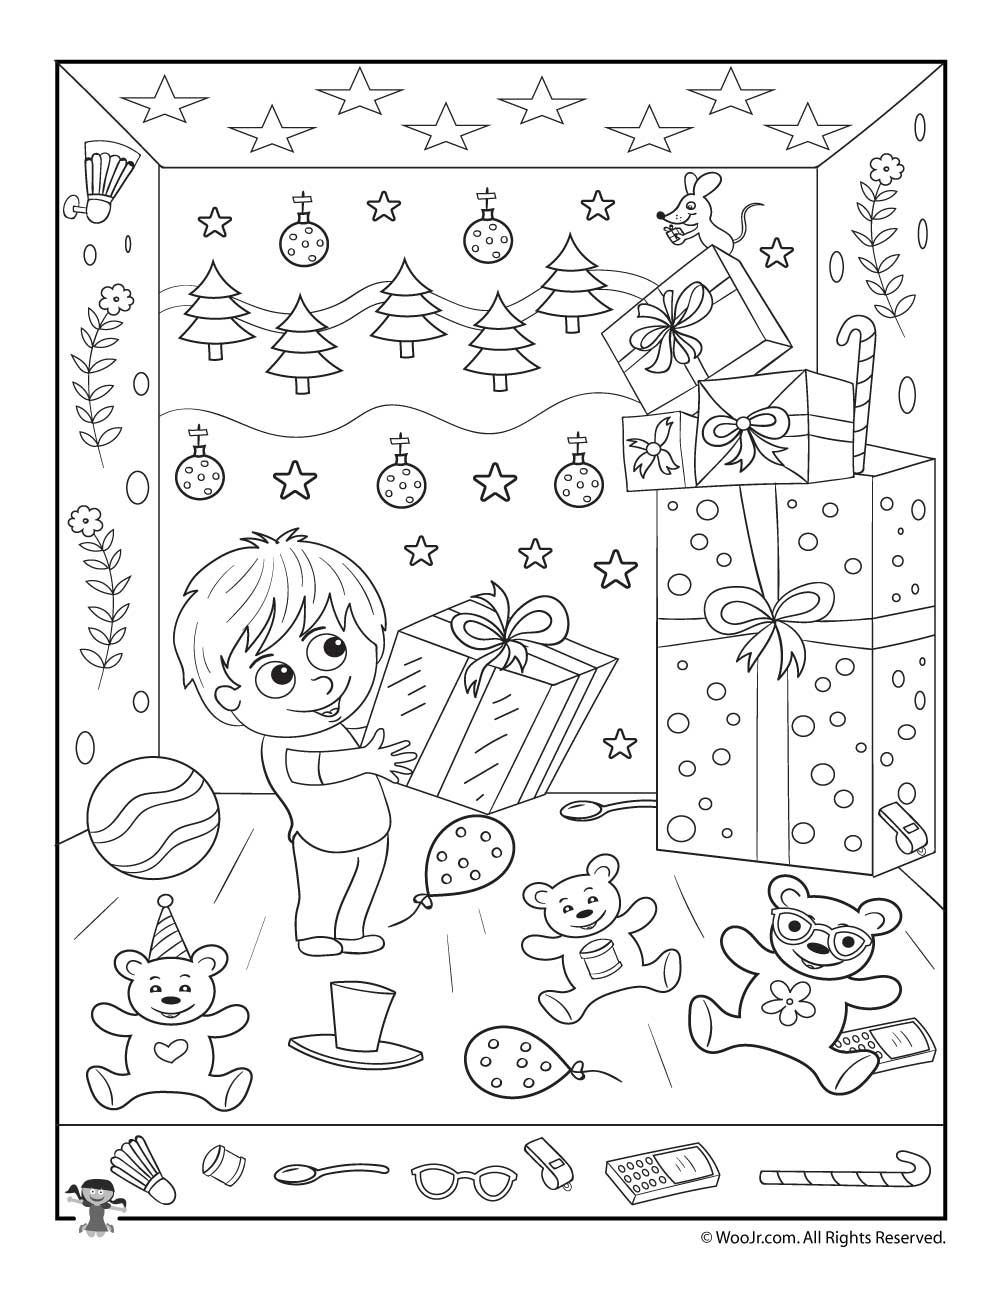 Christmas Gifts Hidden Picture Printable Activity Merry Christmas